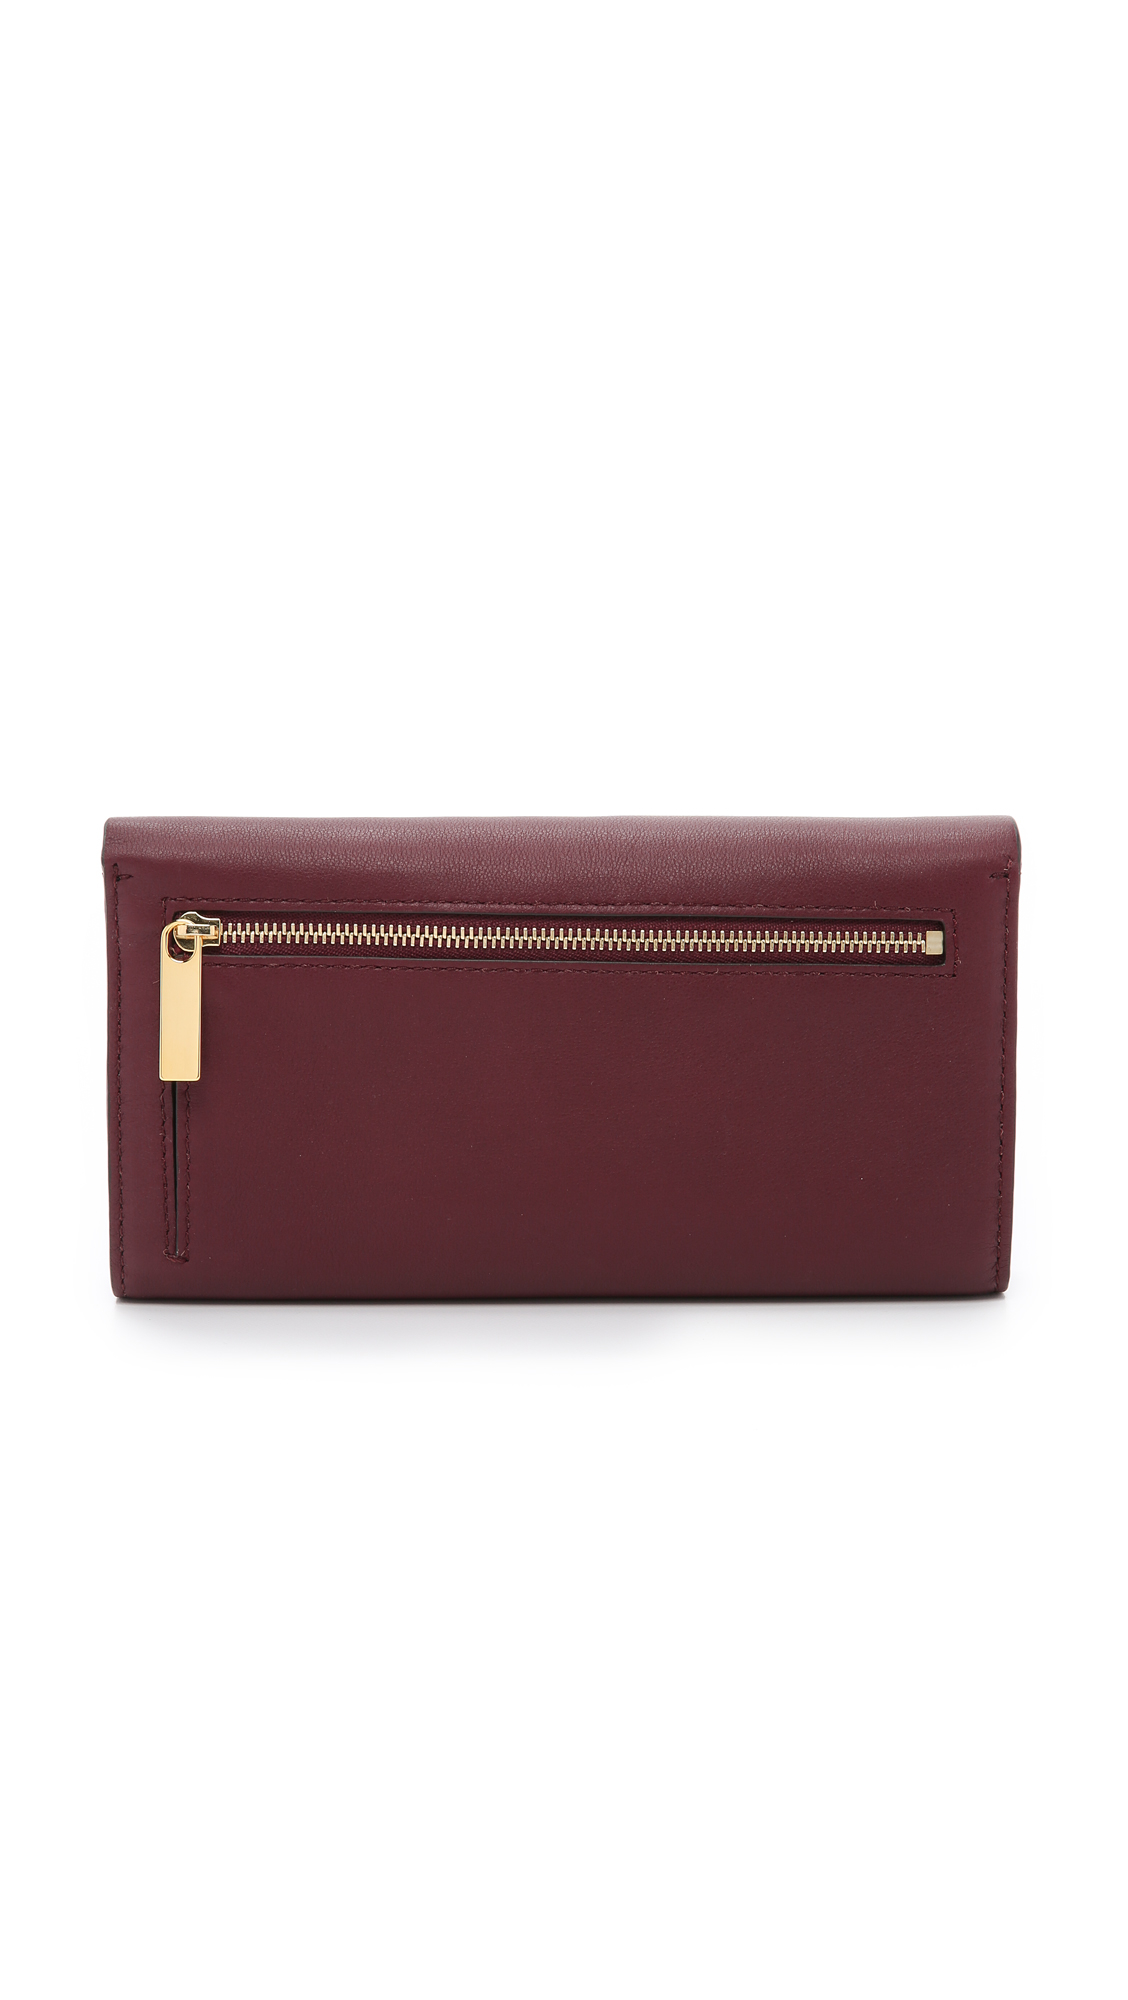 aa6c6a1c73ad Gallery. Previously sold at  Shopbop · Women s Michael By Michael Kors  Miranda Women s Zip Around Wallets ...